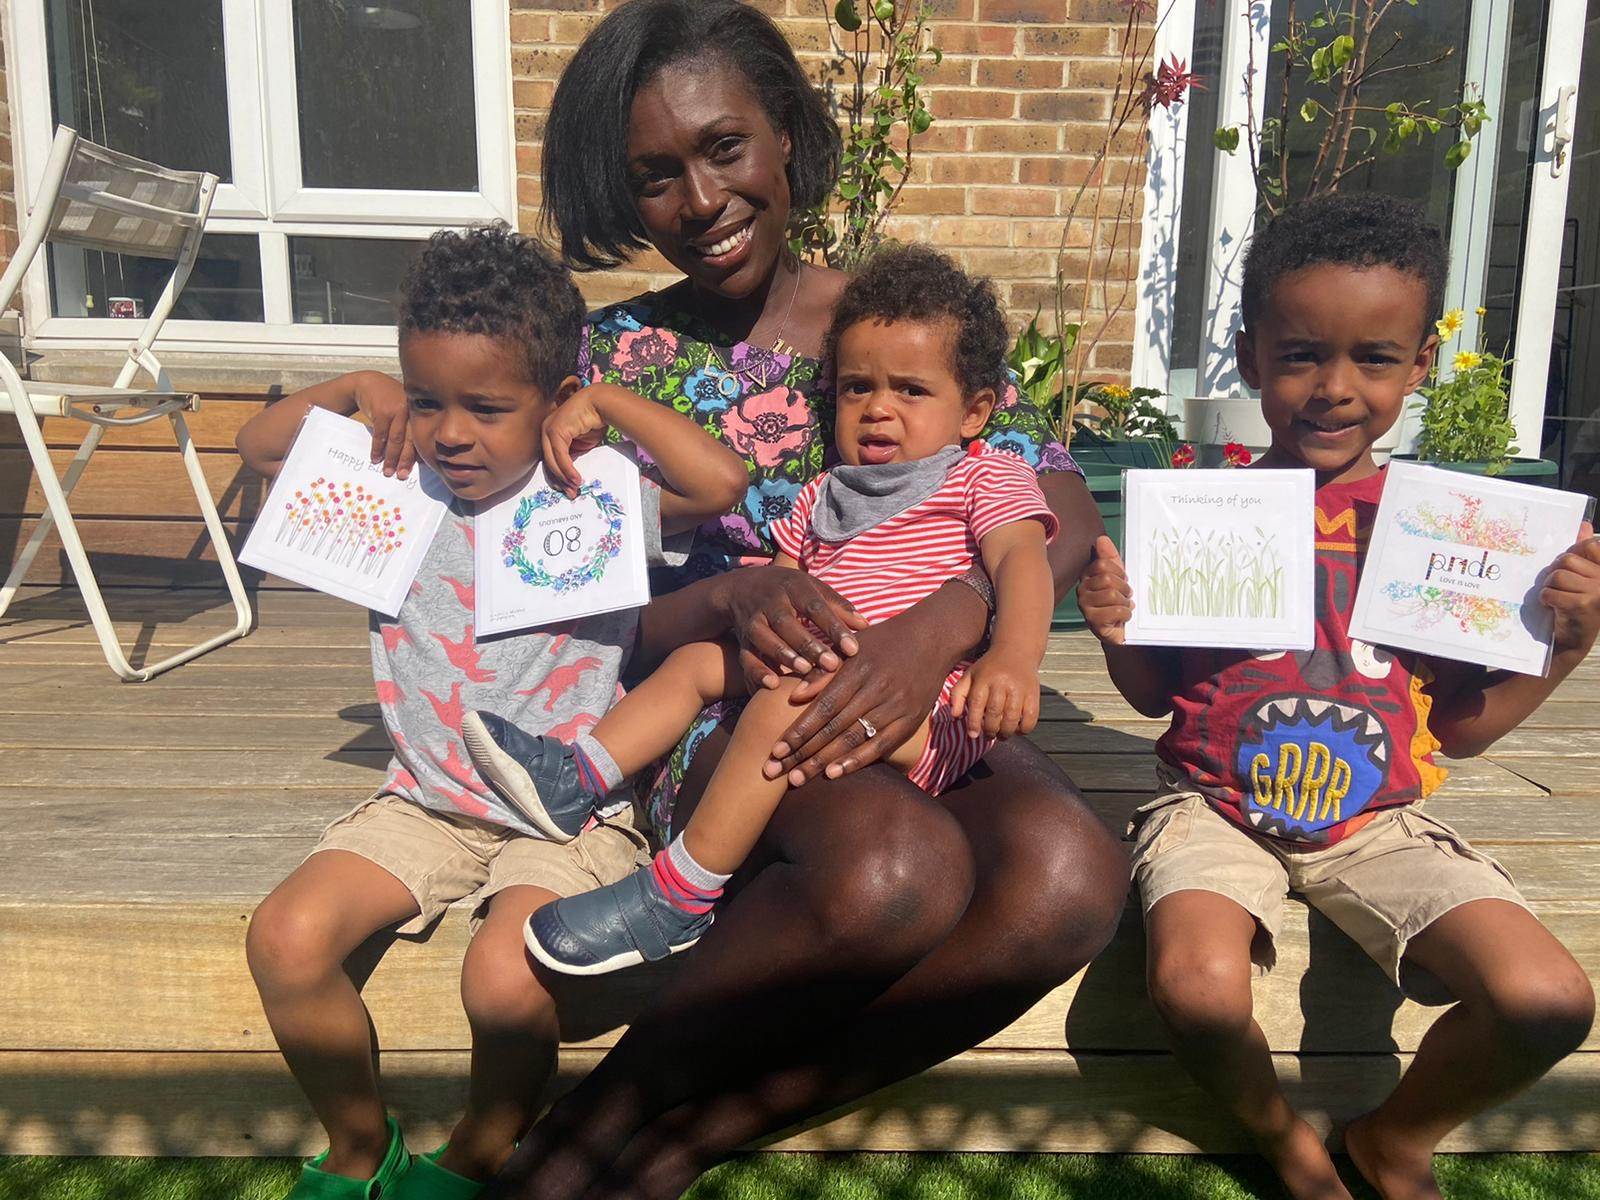 Above: Adriana with her three sons (left to right) Sebastien (3 years), Xavier (11 months), Lucien (5 years) and some Mrs Lovesy cards.